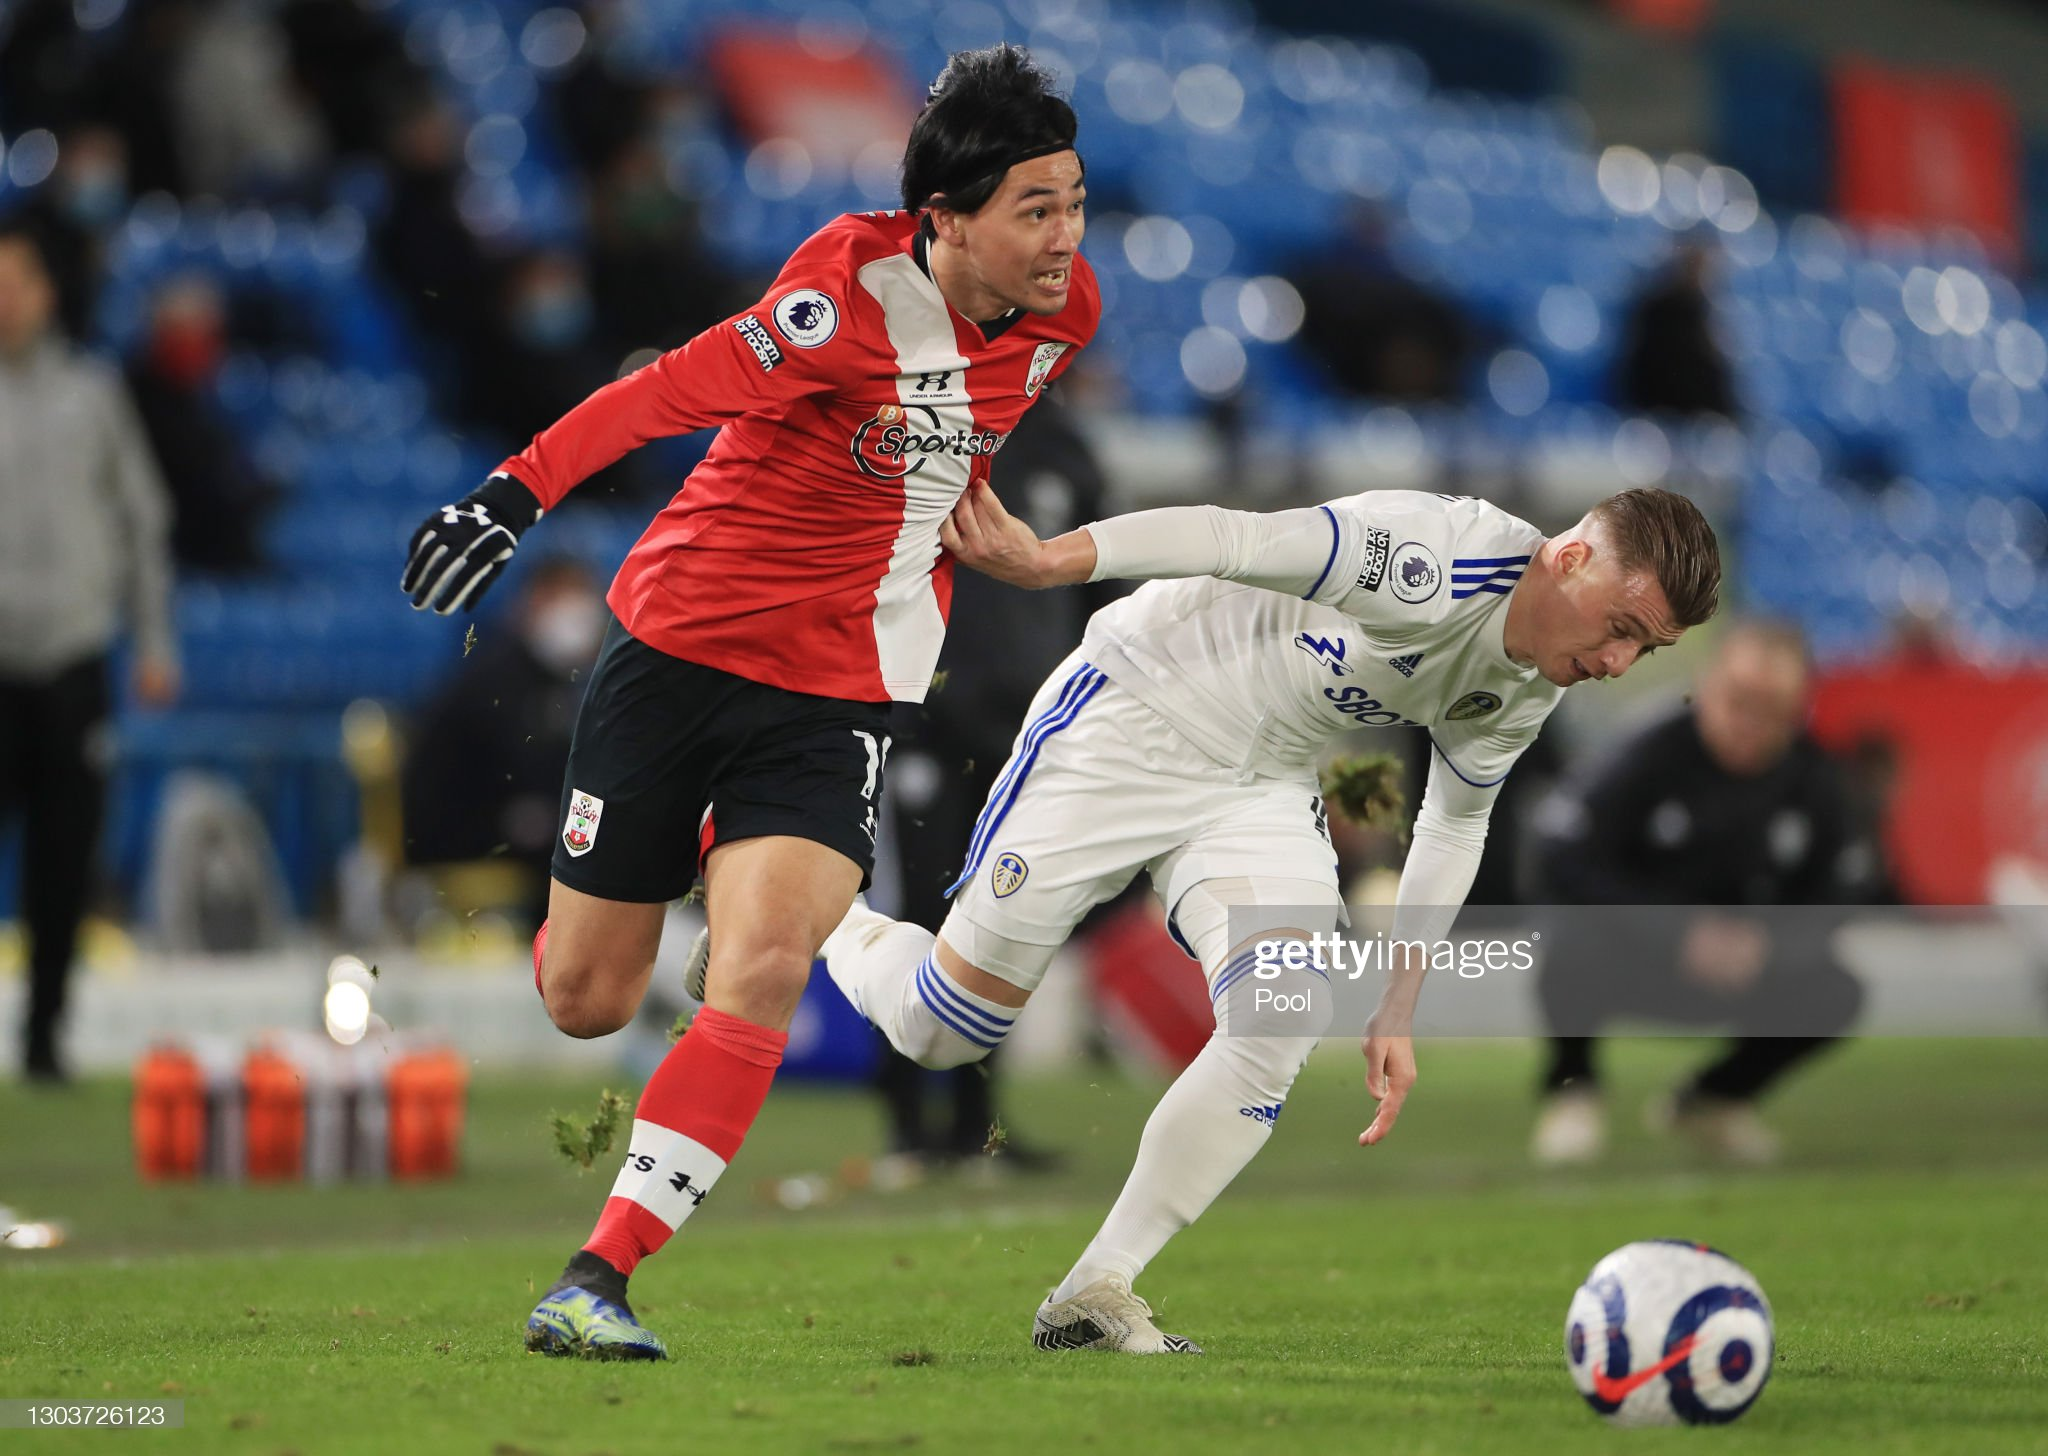 Southampton vs Leeds United Preview, prediction and odds